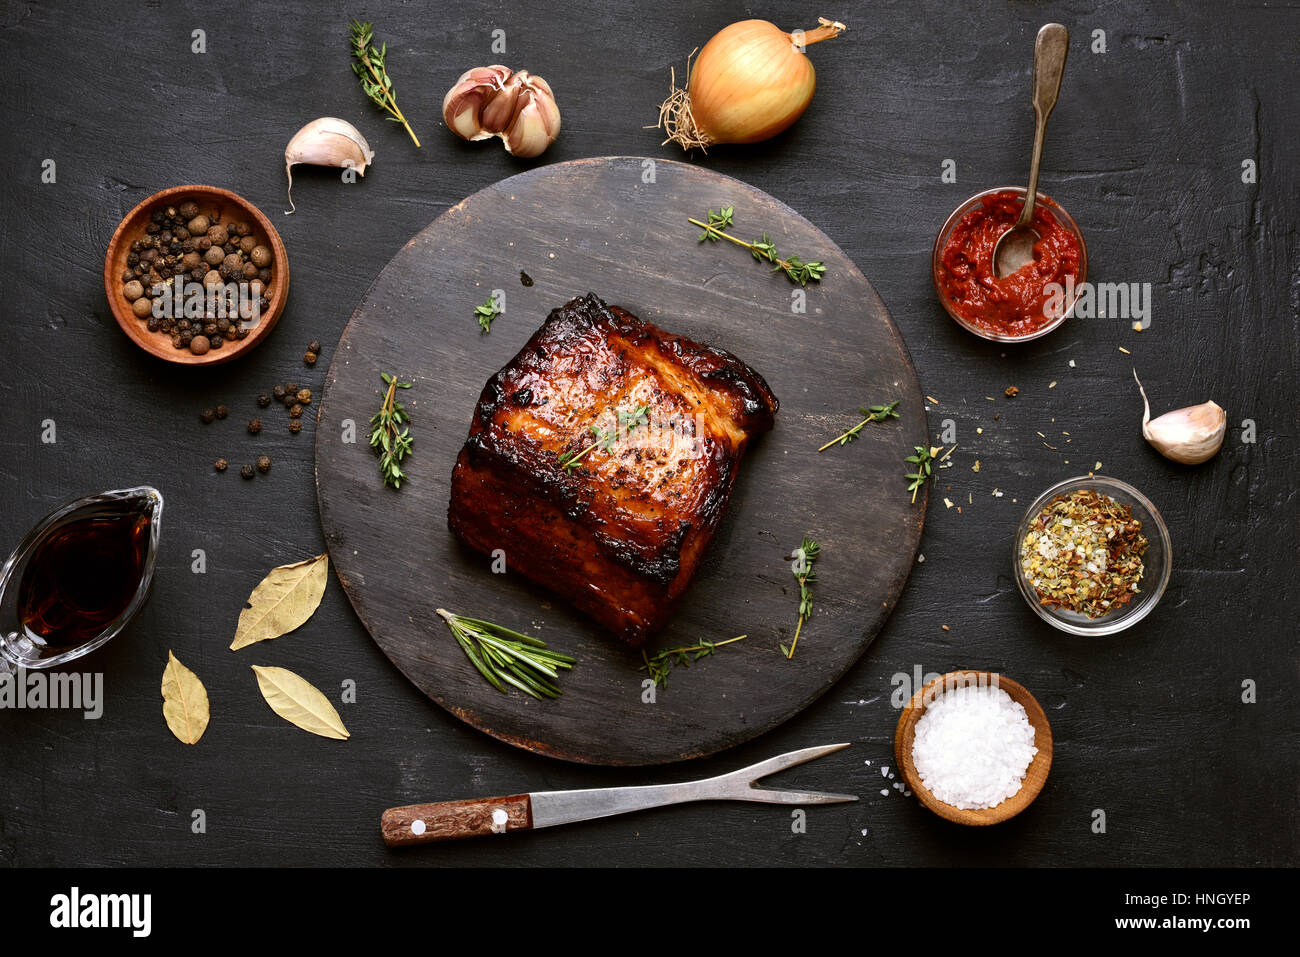 Grilled meat and ingredients on dark background, top view - Stock Image